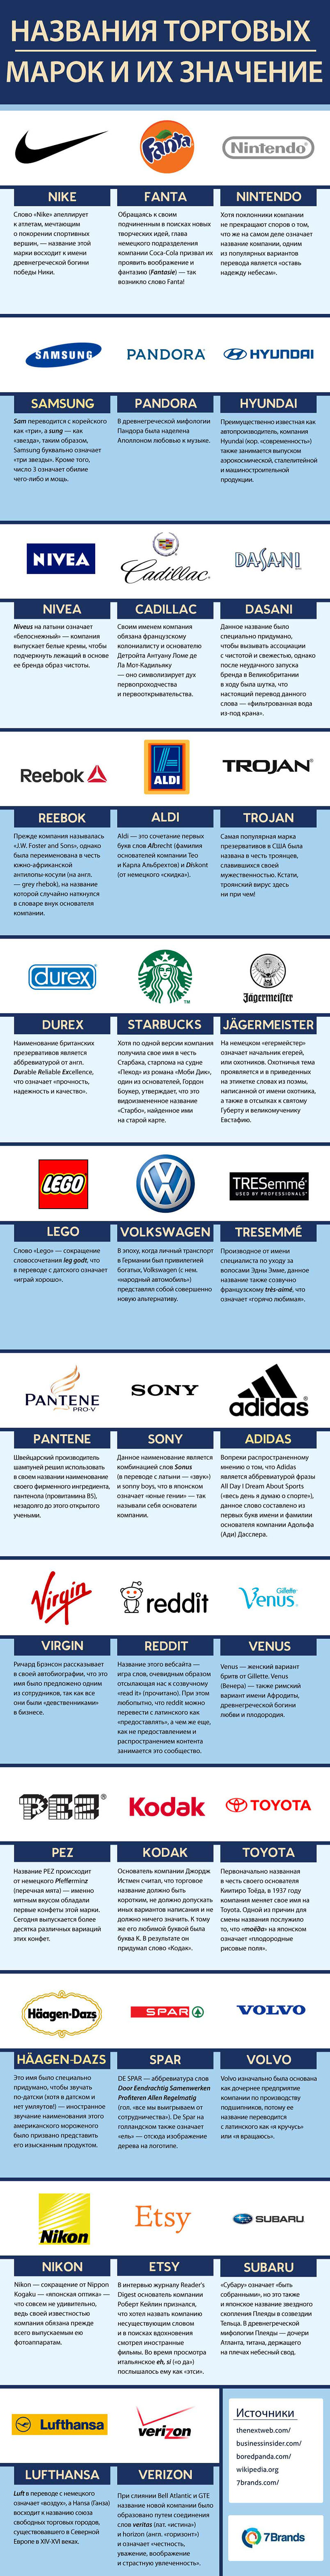 meaning of brand names_RU